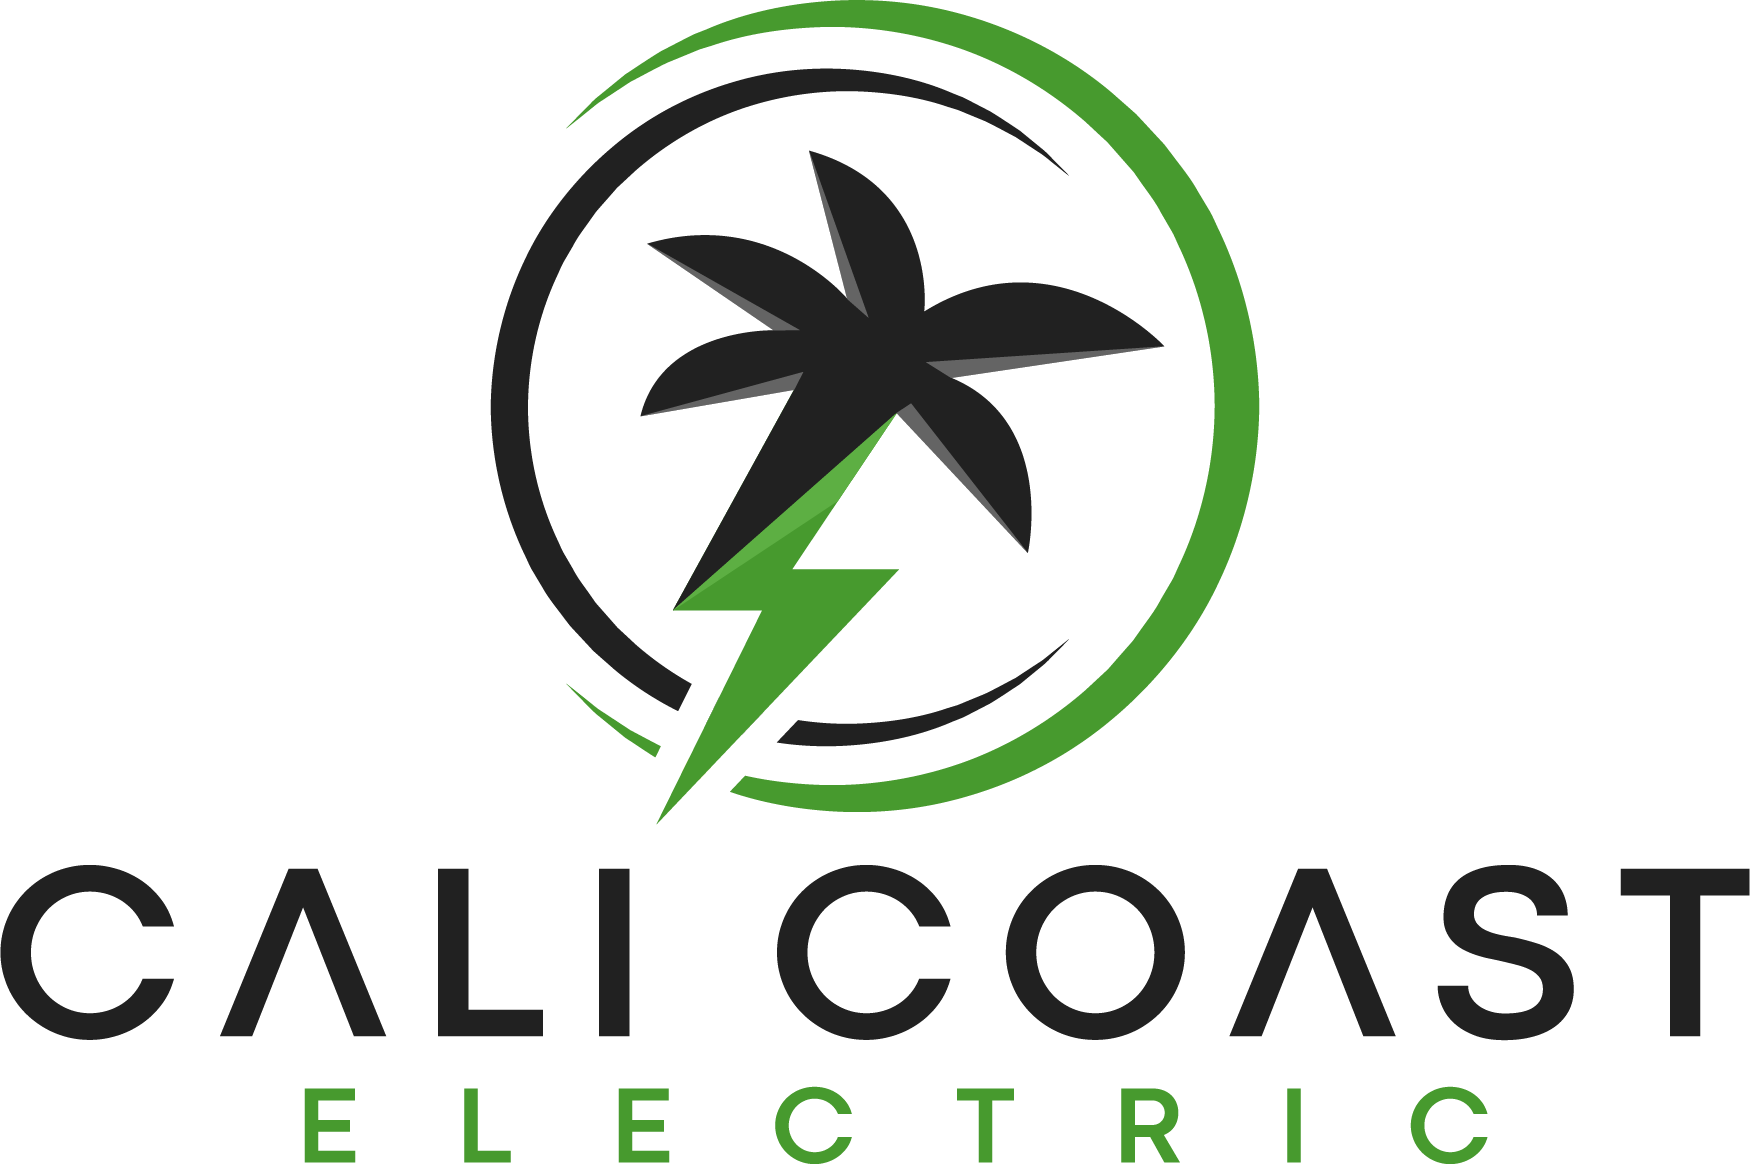 Cali Coast Electric